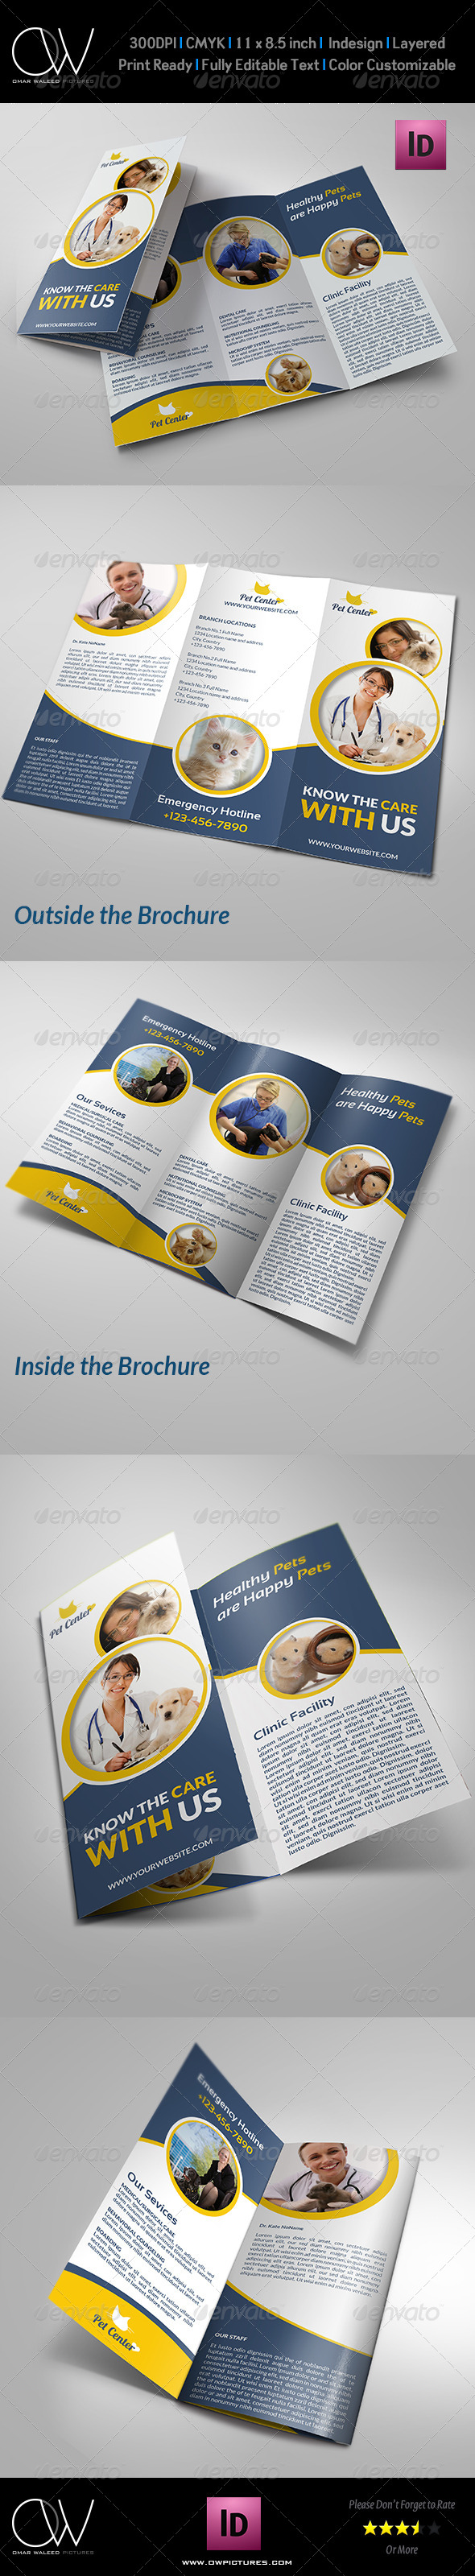 Veterinarian Clinic Brochure Template Vol.2